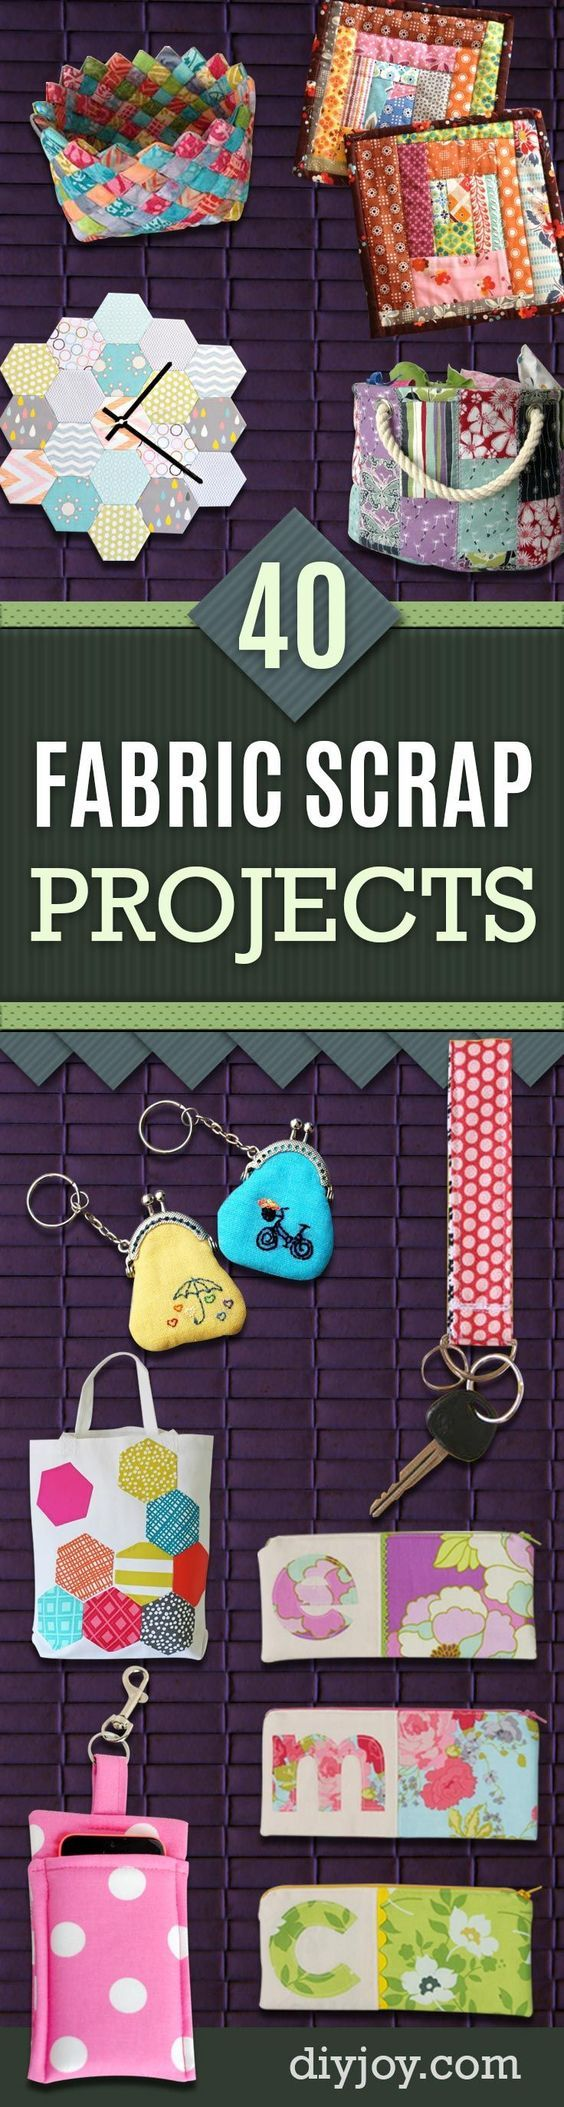 Need some cool crafts you can make with fabric scraps? Here are some creative DIY sewing projects and things to do with leftover fabric and even old clothes that are too small! Get the leftover fabric scraps ideas here. Get a weekly summary of new patterns sent to your inbox …  Continue reading →